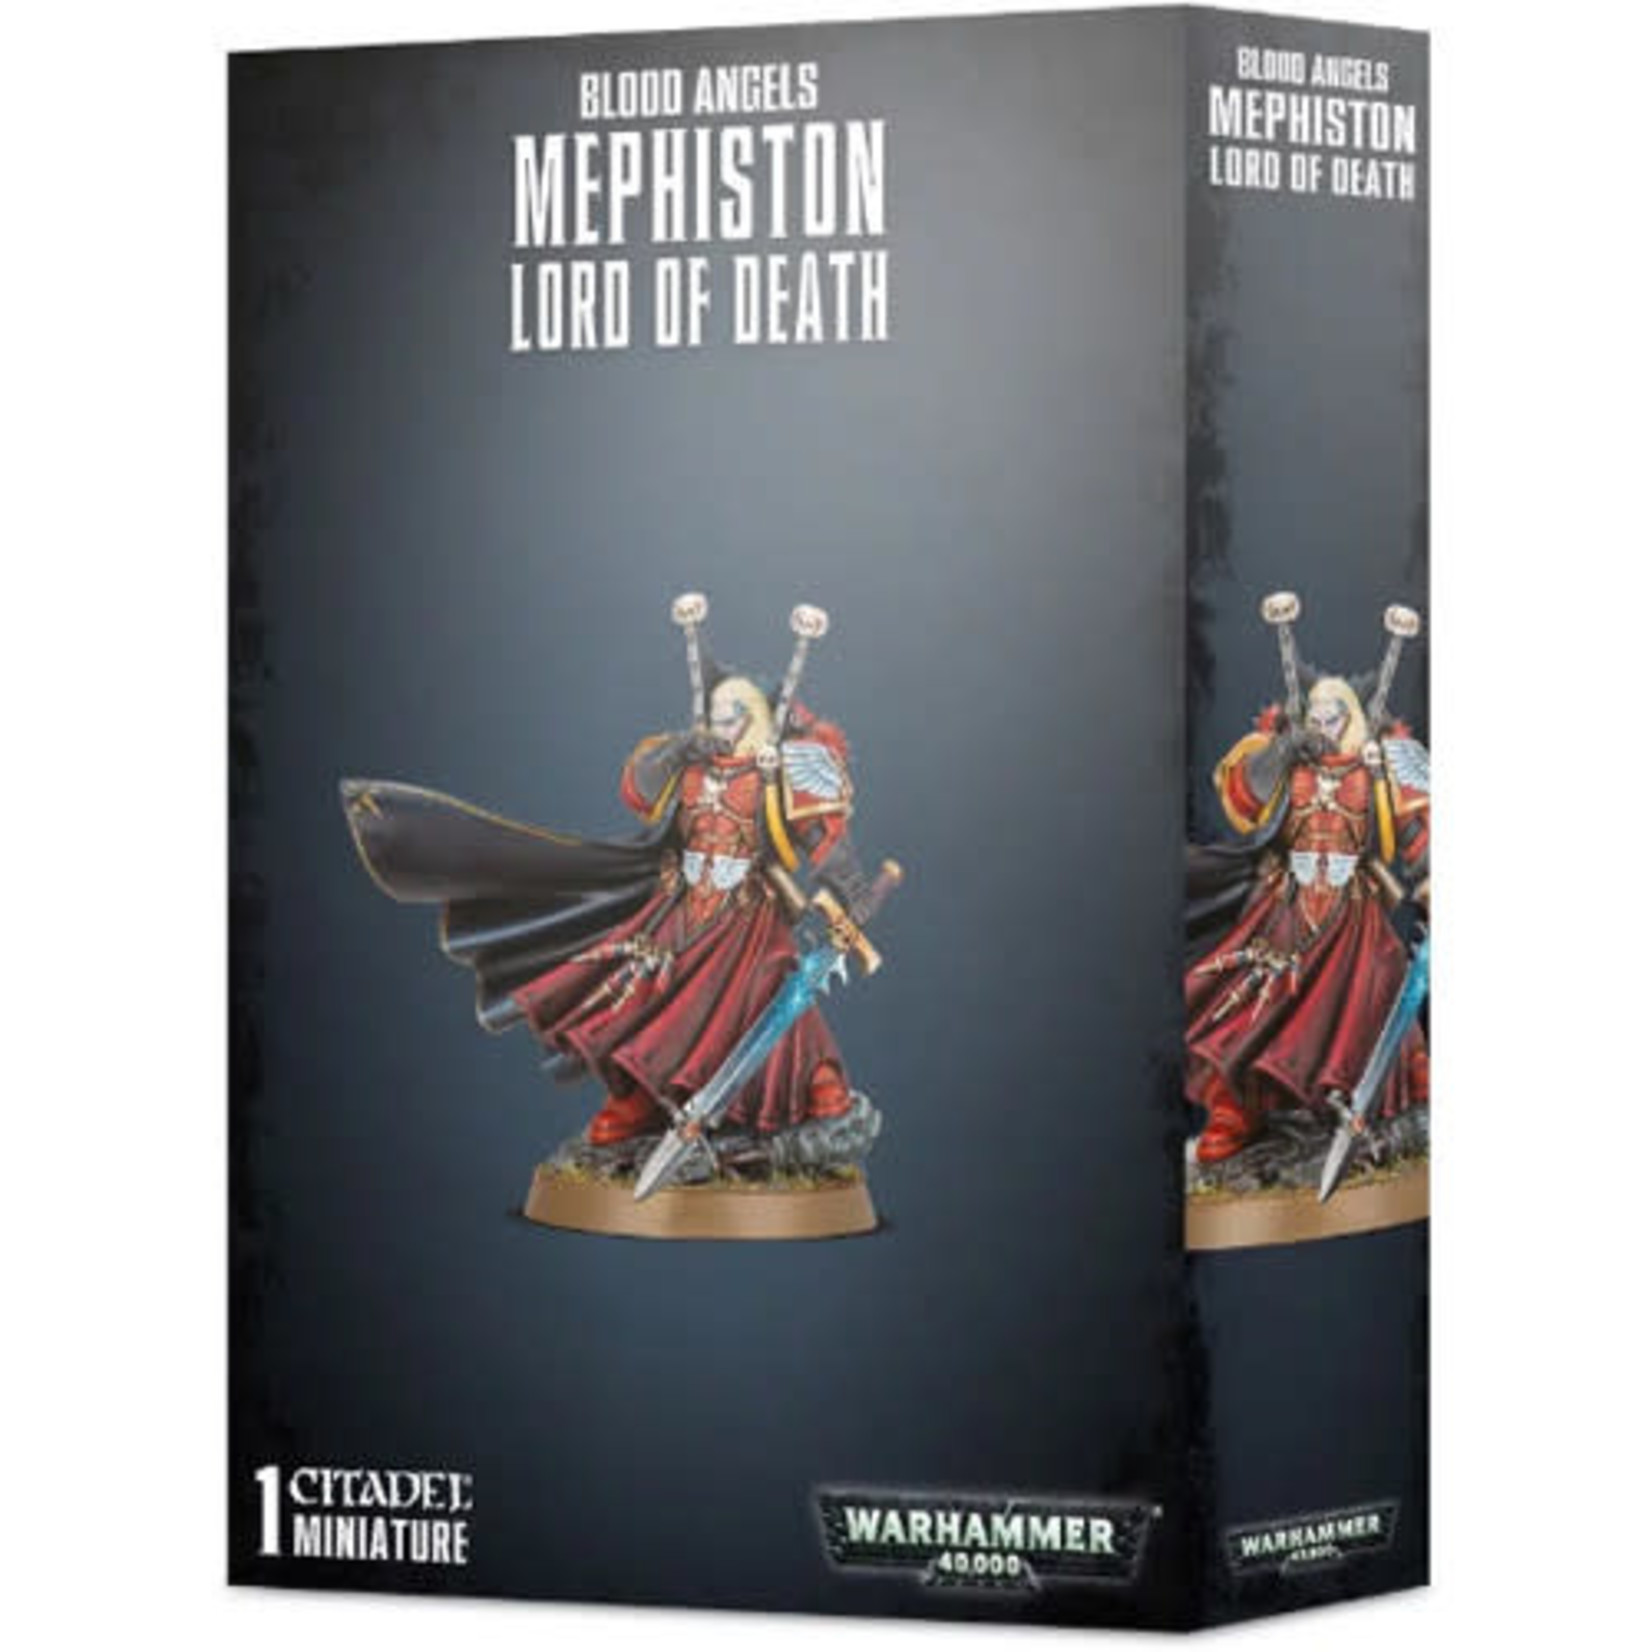 Blood Angels Mephiston Lord of Death (40K)